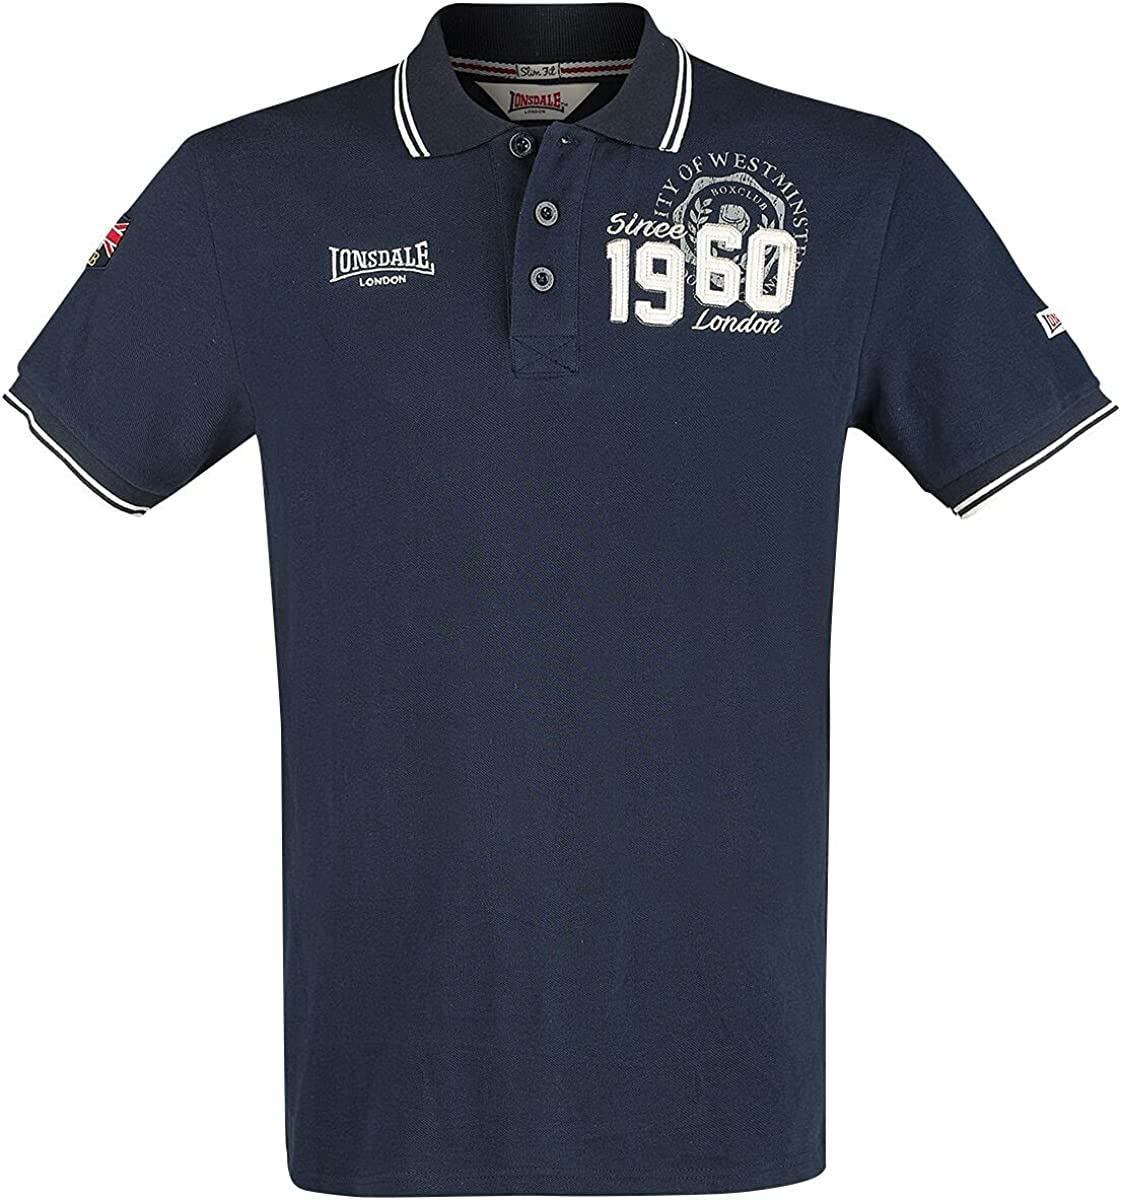 Free 67% OFF of fixed price shipping New Lonsdale Men Polo Shirt Fakenham